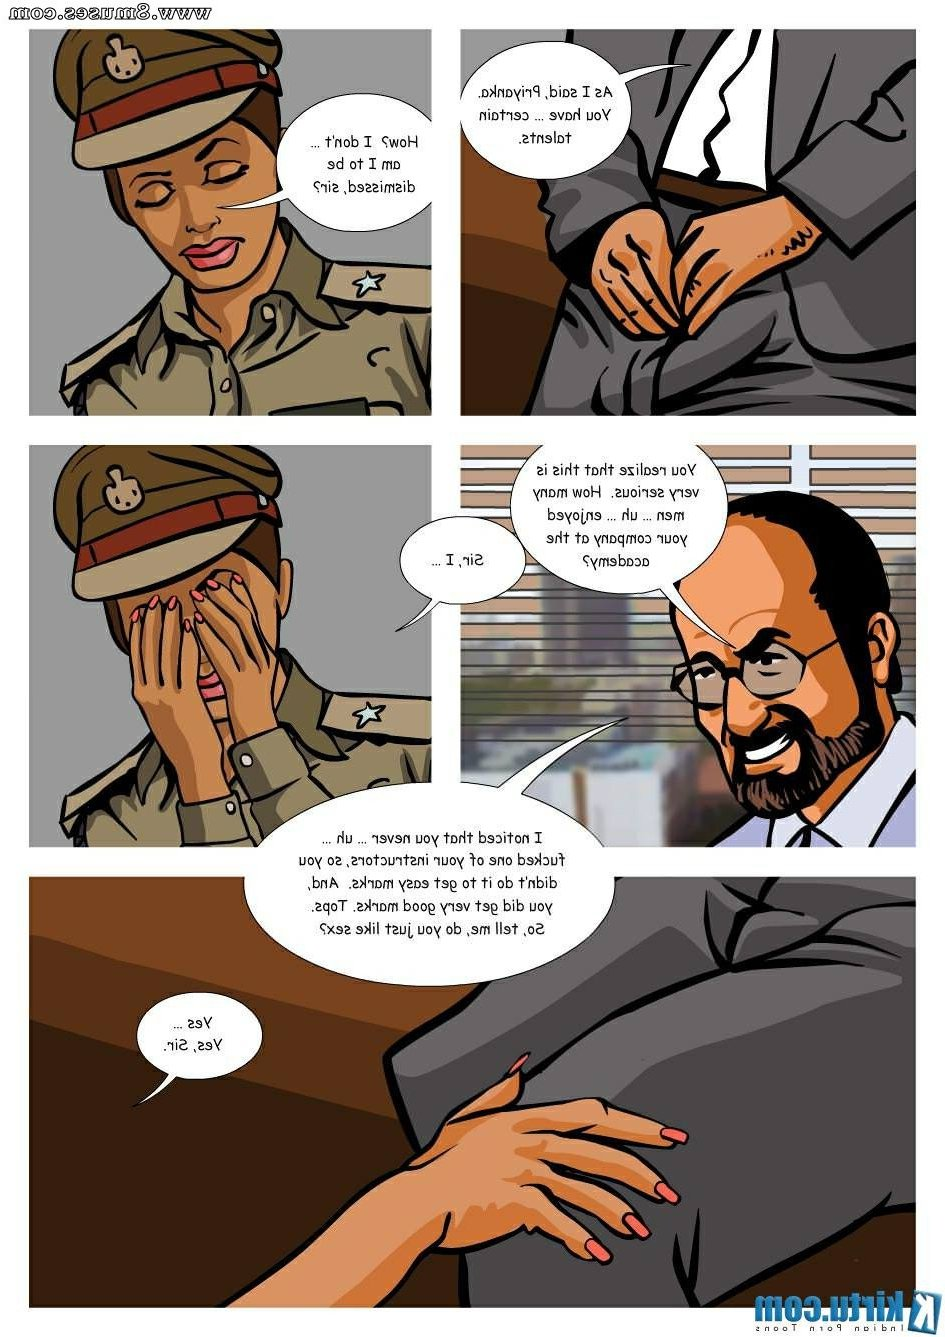 Kirtu_com-Comics/Priya-Rao-The-Encounter-Specialist/Issue-1 Priya_Rao_-_The_Encounter_Specialist_-_Issue_1_7.jpg